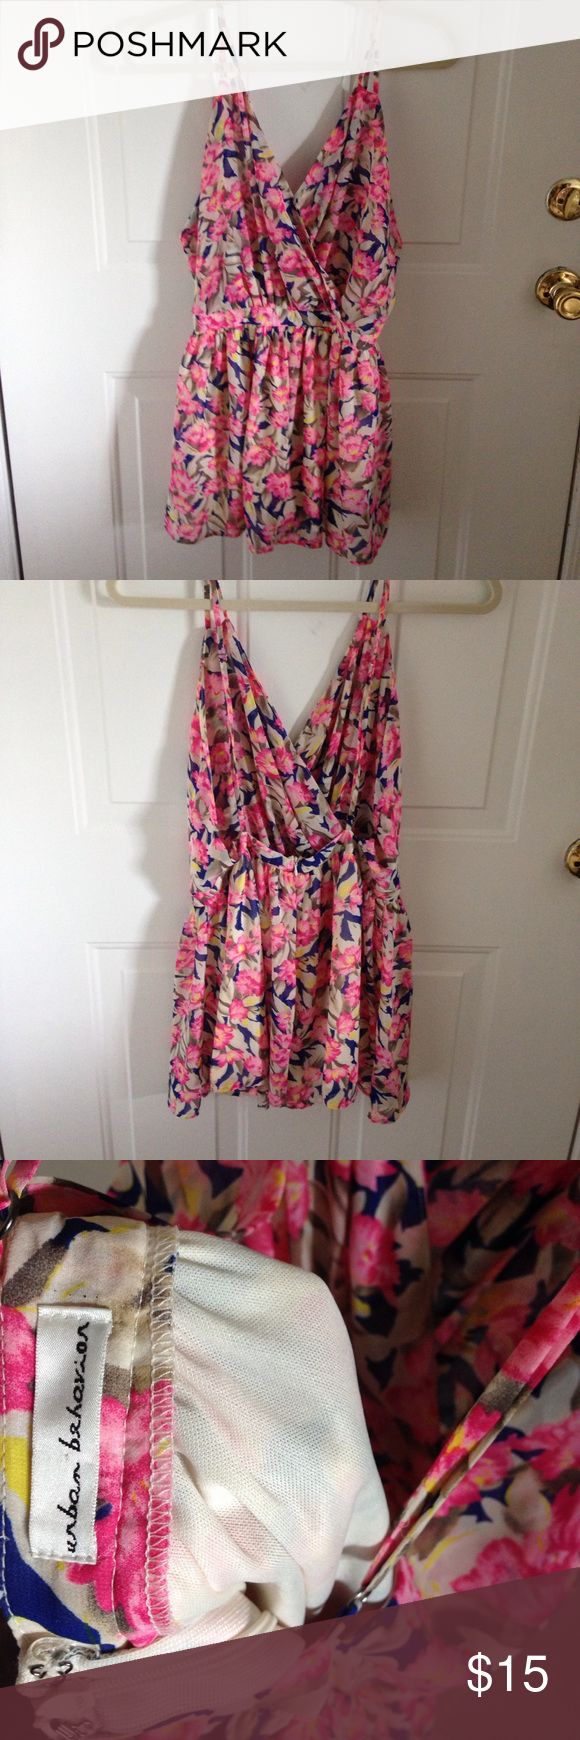 floral, colorful, flirty romper or coverup worn a few times! adorable romper. open back withe adjustable straps. purchased from a boutique in arizona. originally had a size medium on the tag. would best fit a 4 or 6 in my opinion Urban Behavior Other